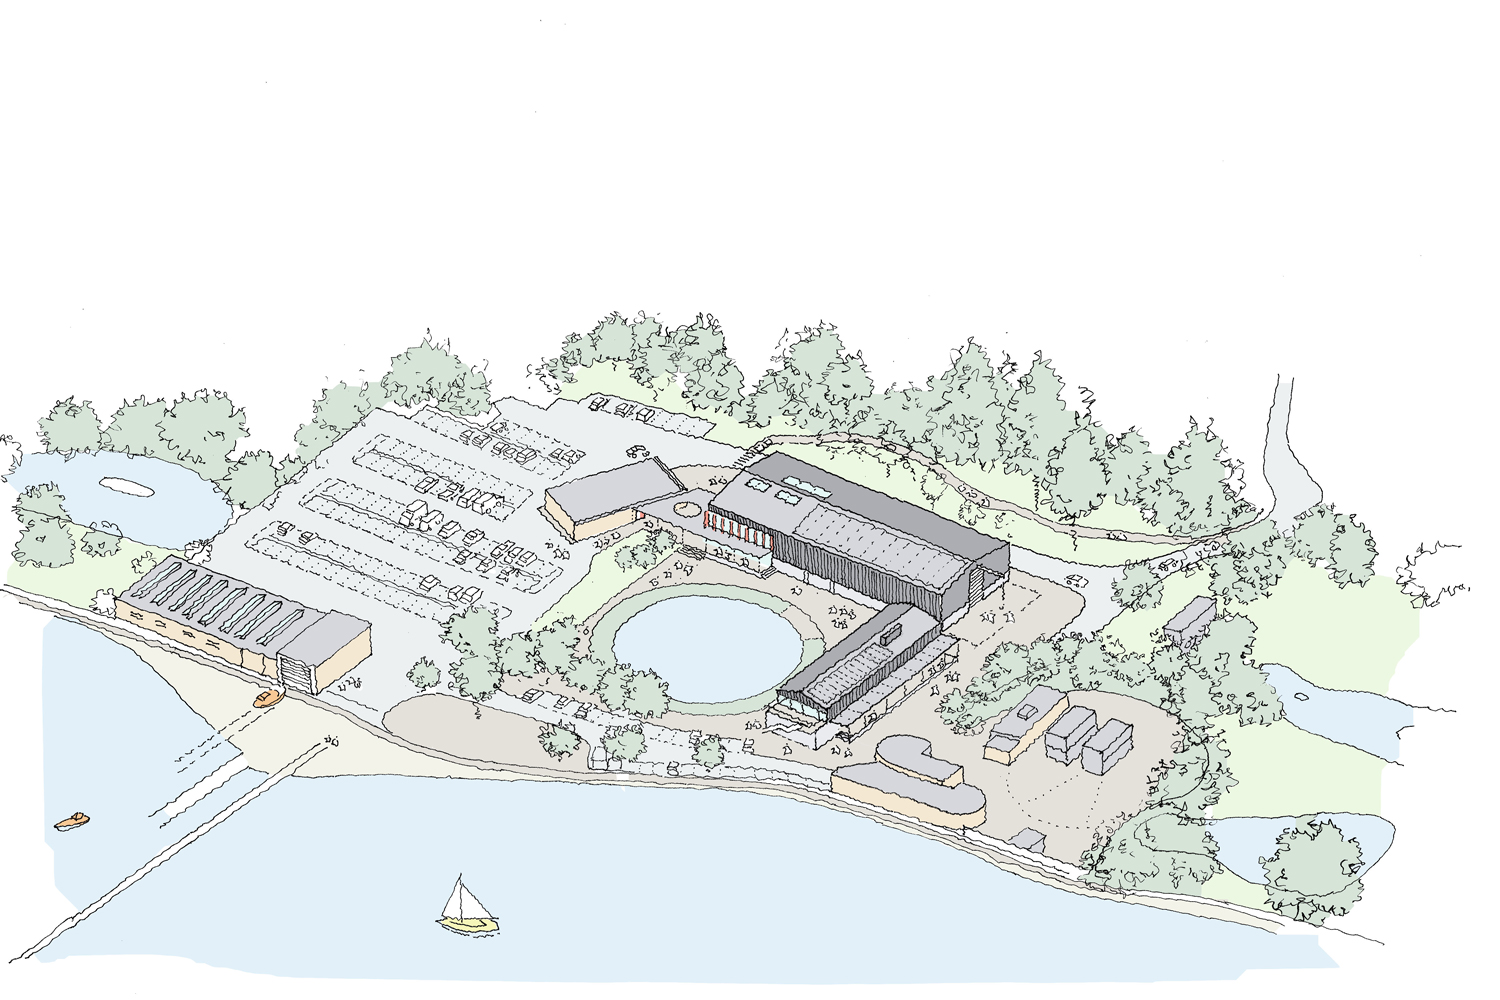 Warsash Maritime Academy Site Overview Drawing